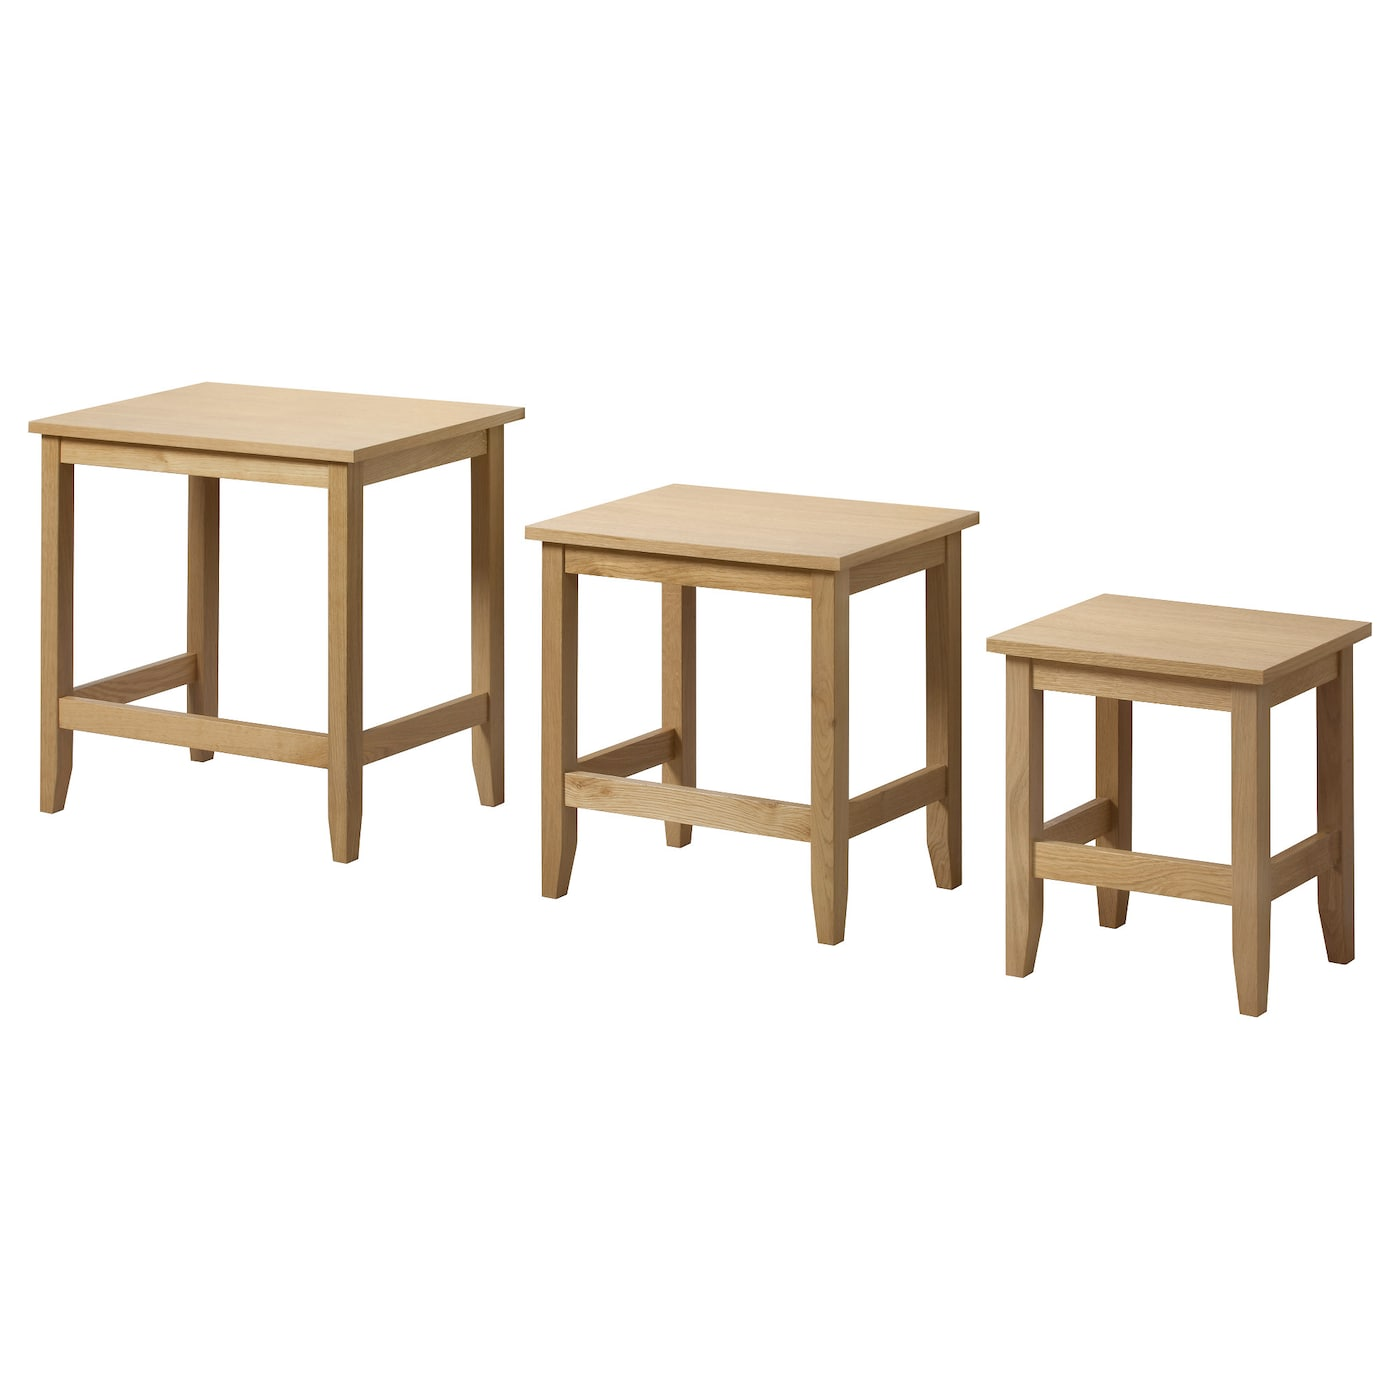 Skoghall nest of tables set of 3 oak ikea Ikea coffee tables and end tables